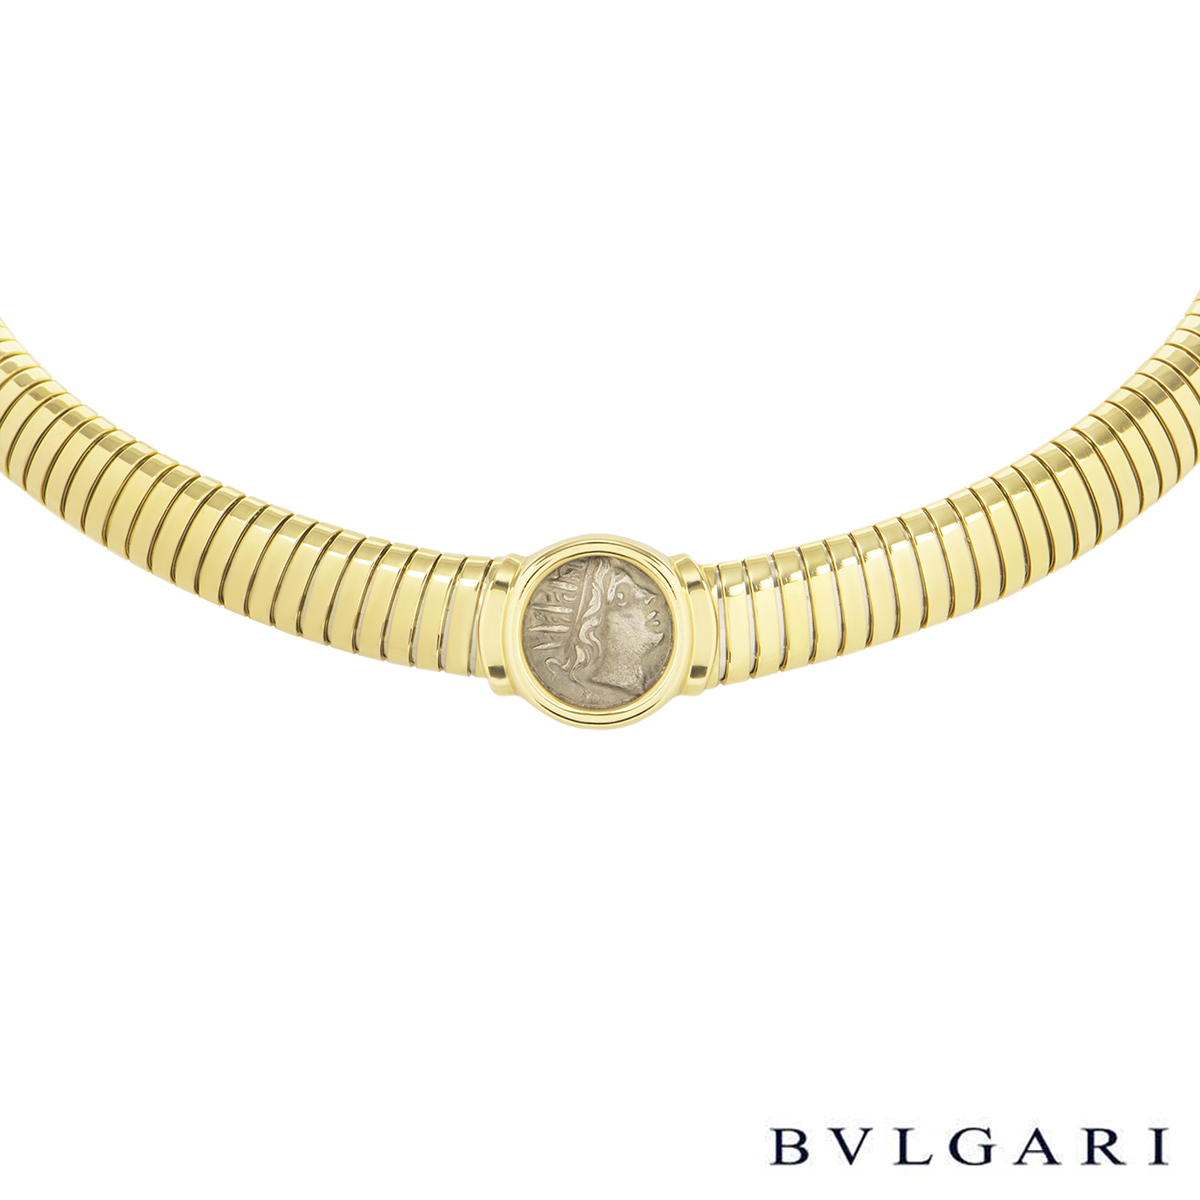 Bvlgari Yellow Gold Caria Rhodos Coin Necklace